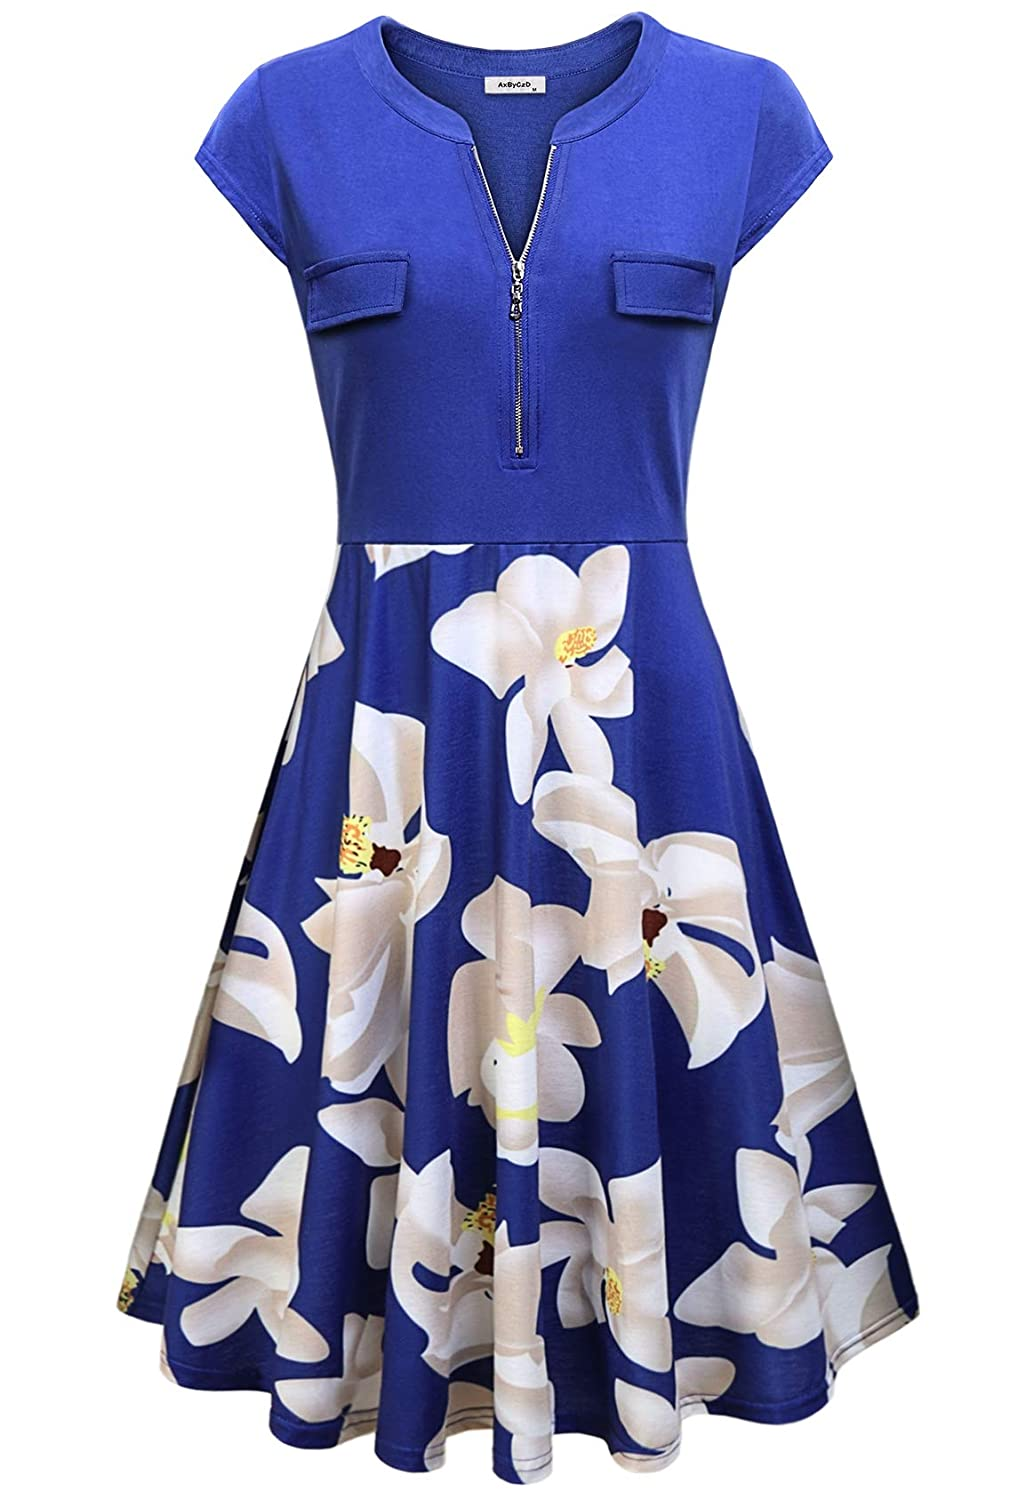 bluee Floral AxByCzD Women's Vintage V Neck Cap Sleeve Casual Patchwork A Line Dress